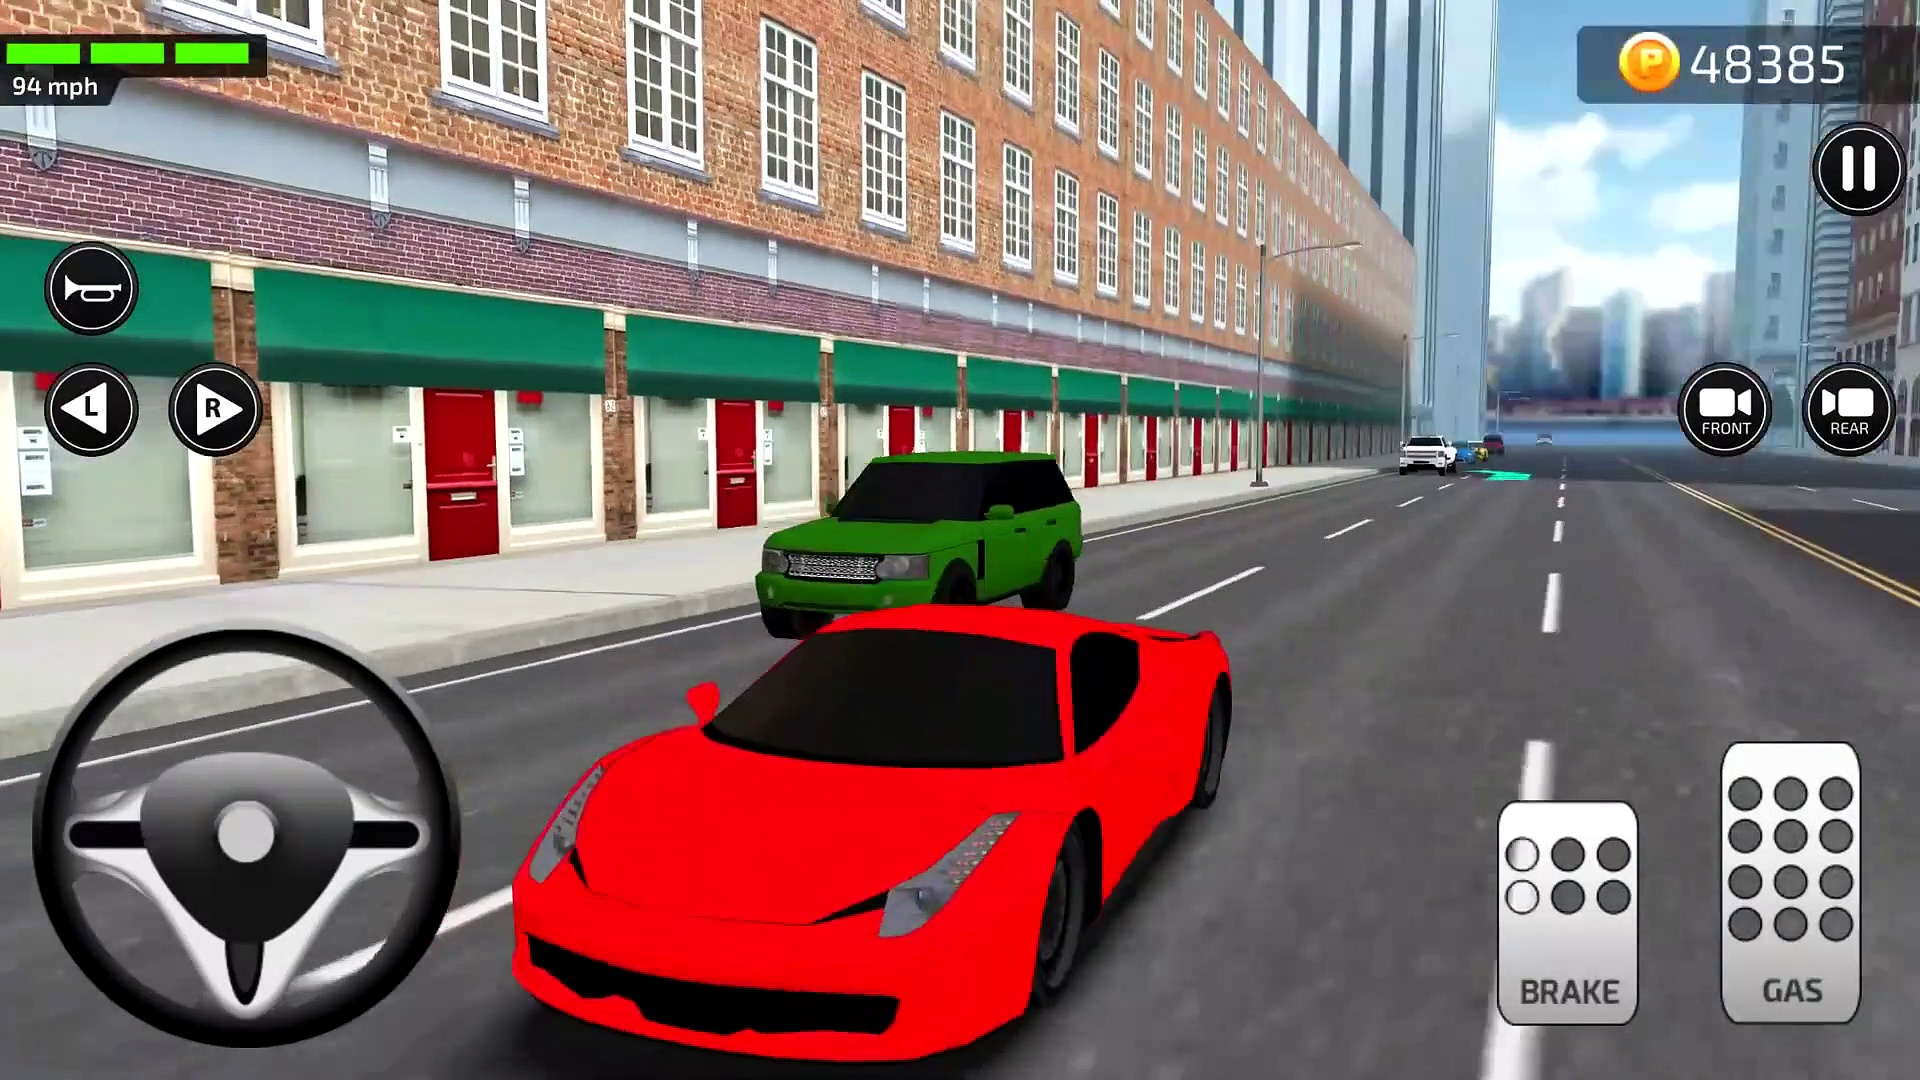 Car Raceing game videos for videos